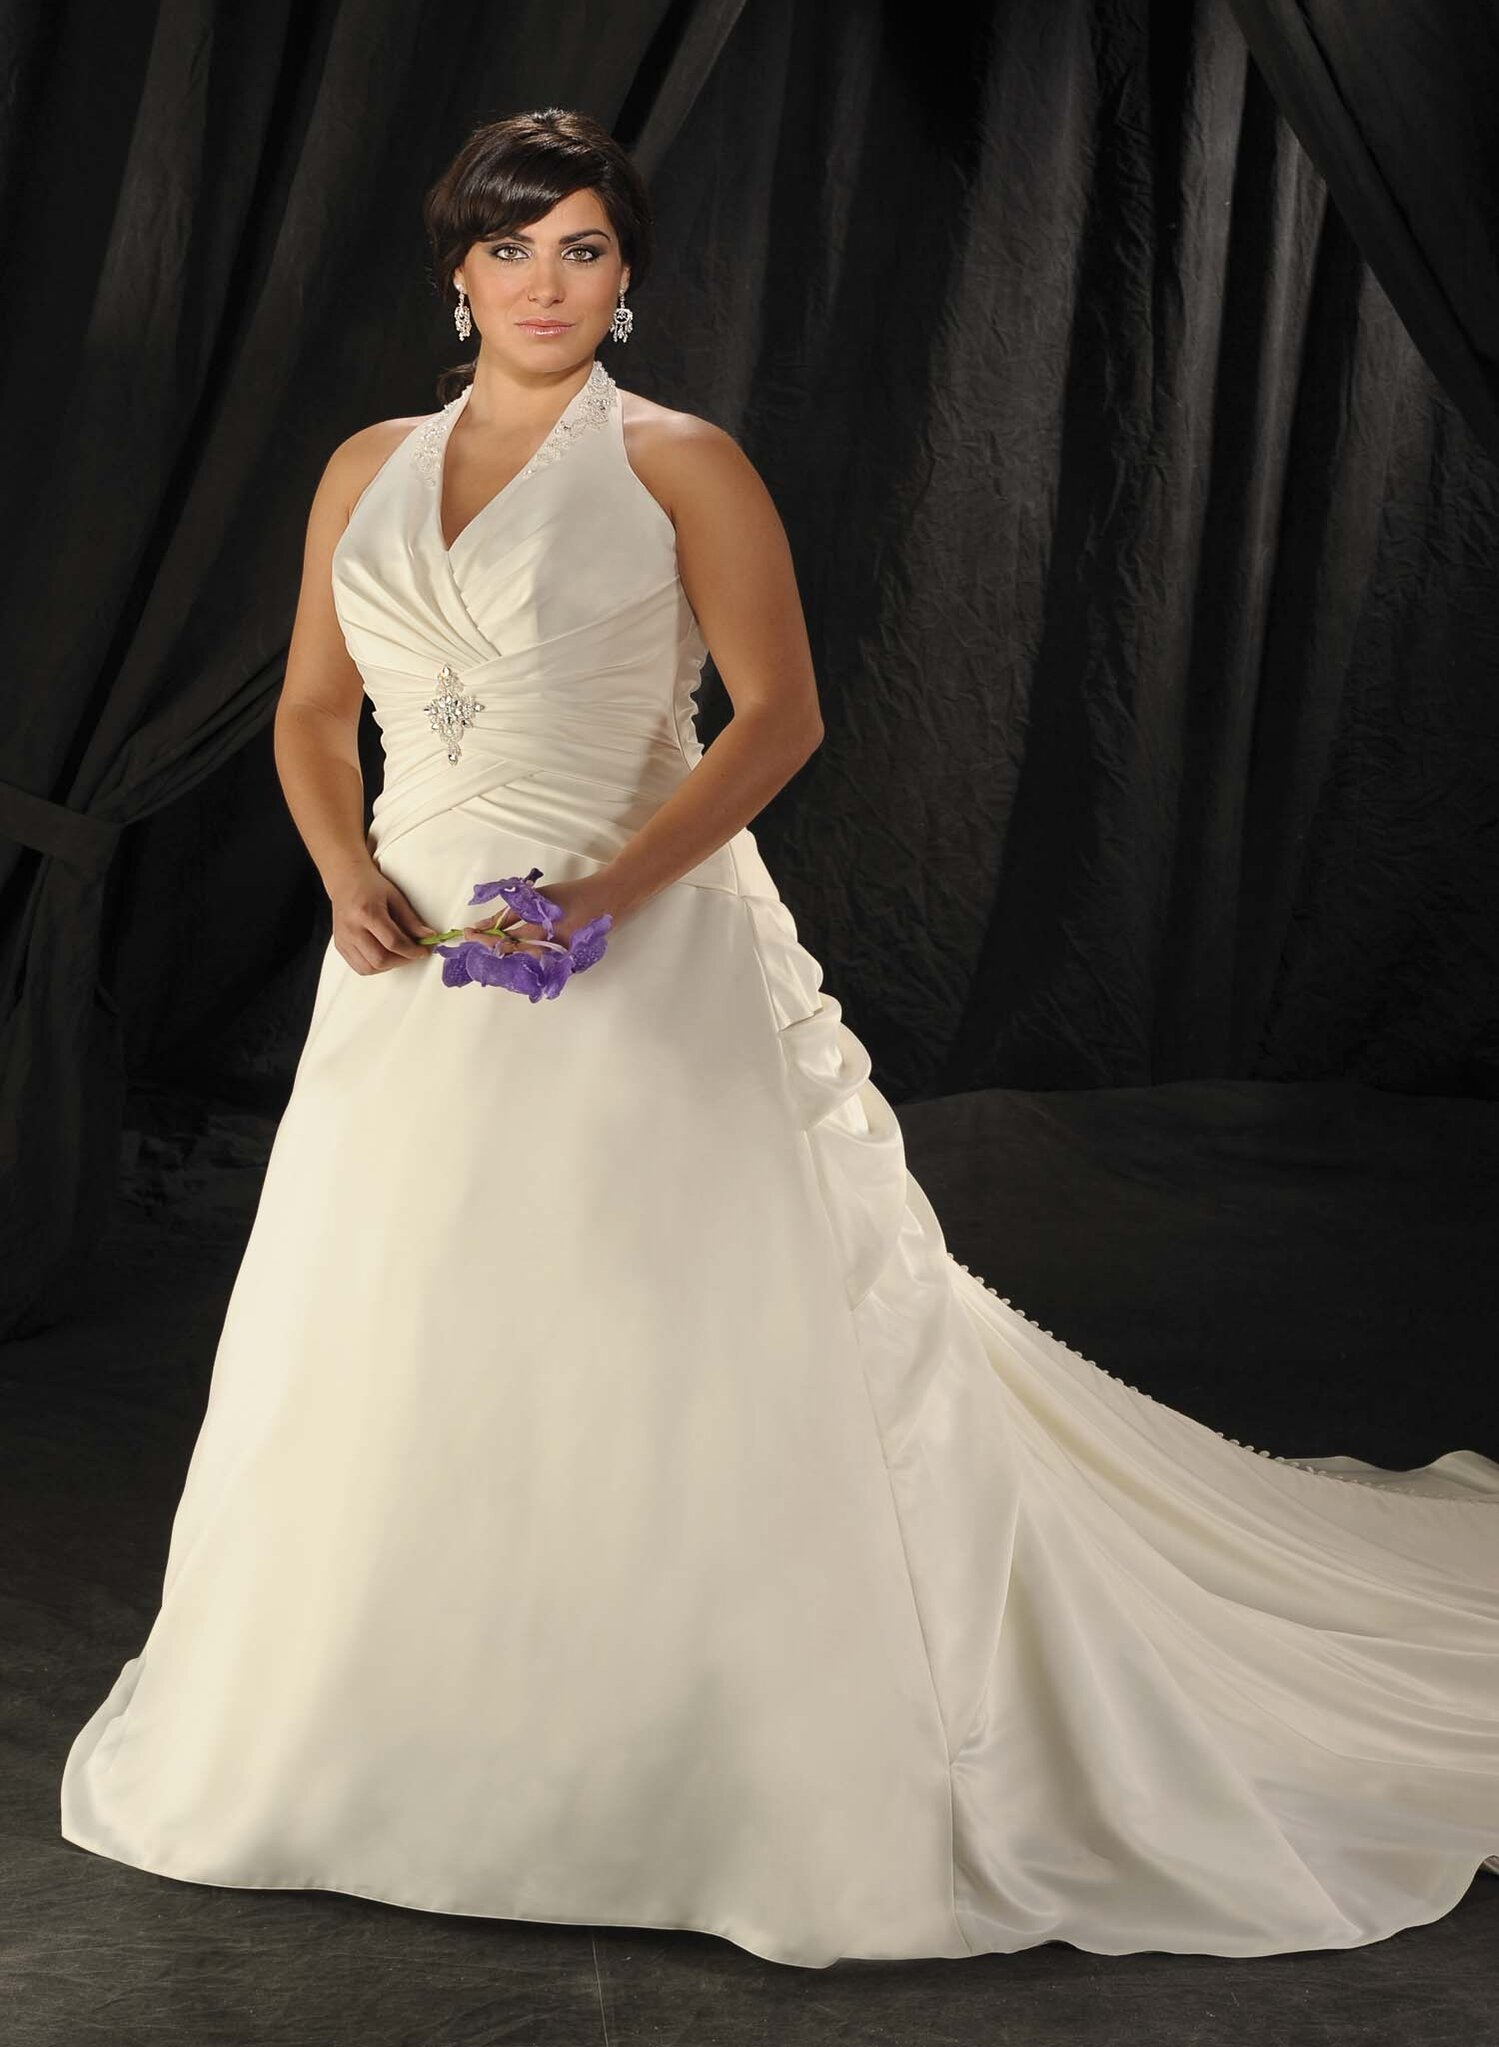 Plus size dresses for wedding guests pictures ideas for Plus size dresses for wedding guests